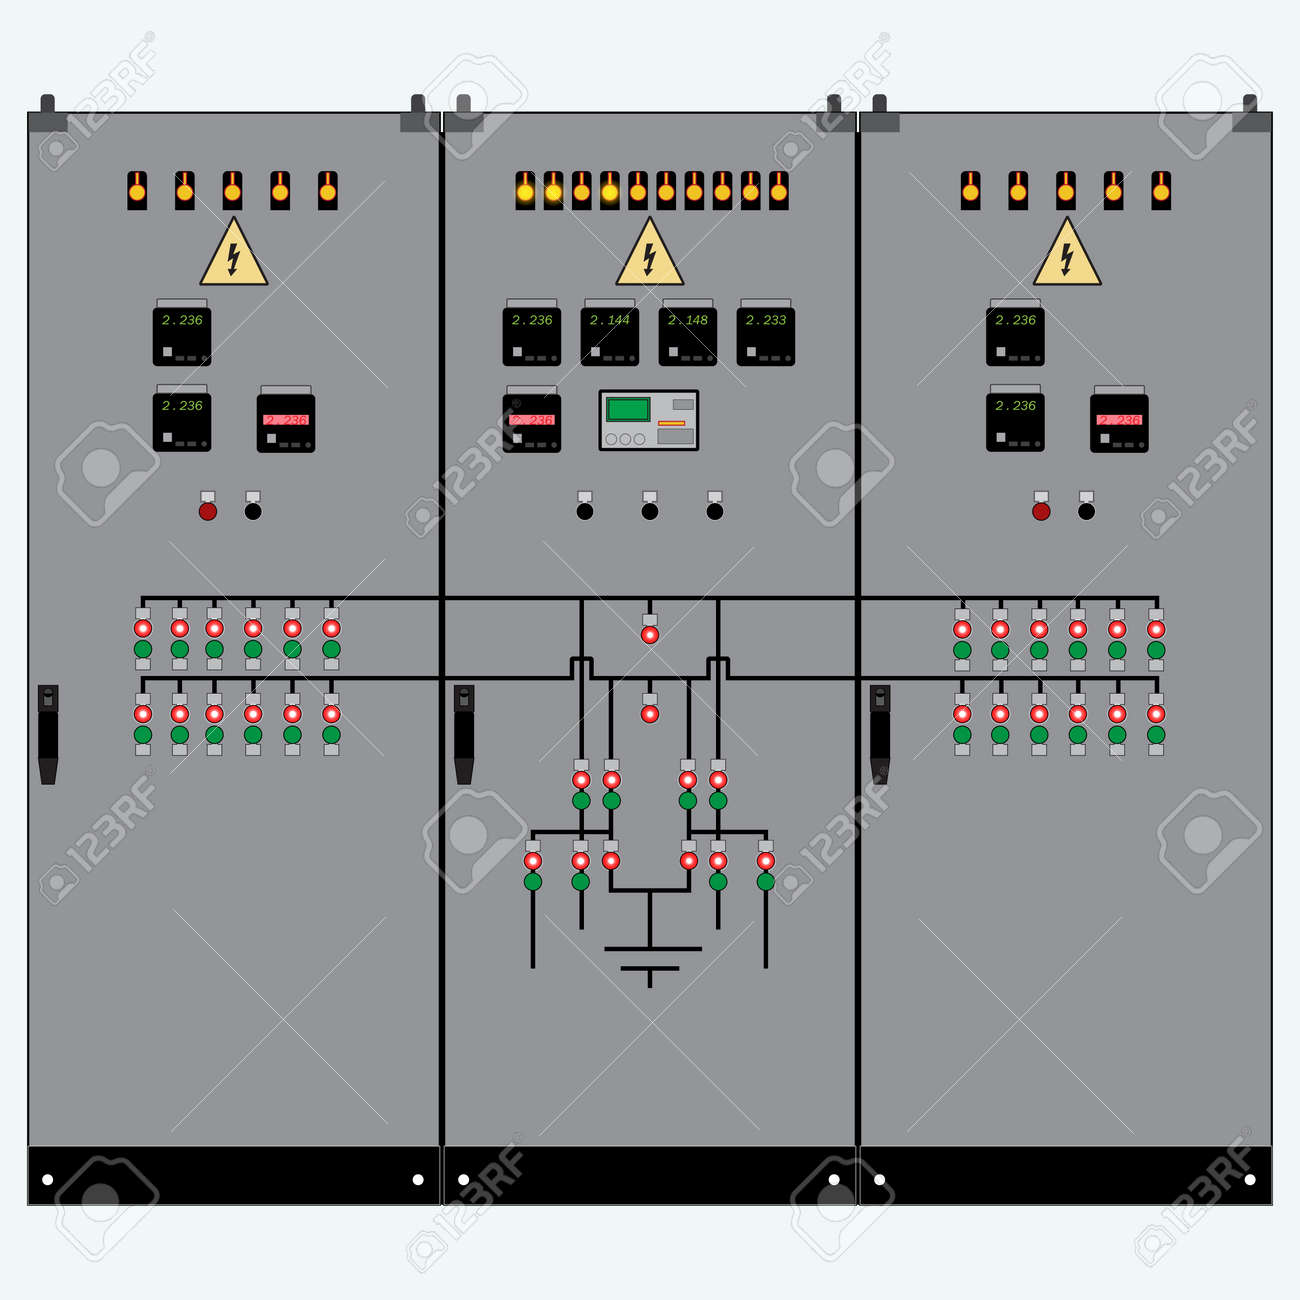 Picture Of The Electrical Panel, Electric Meter And Circuit Breakers ...